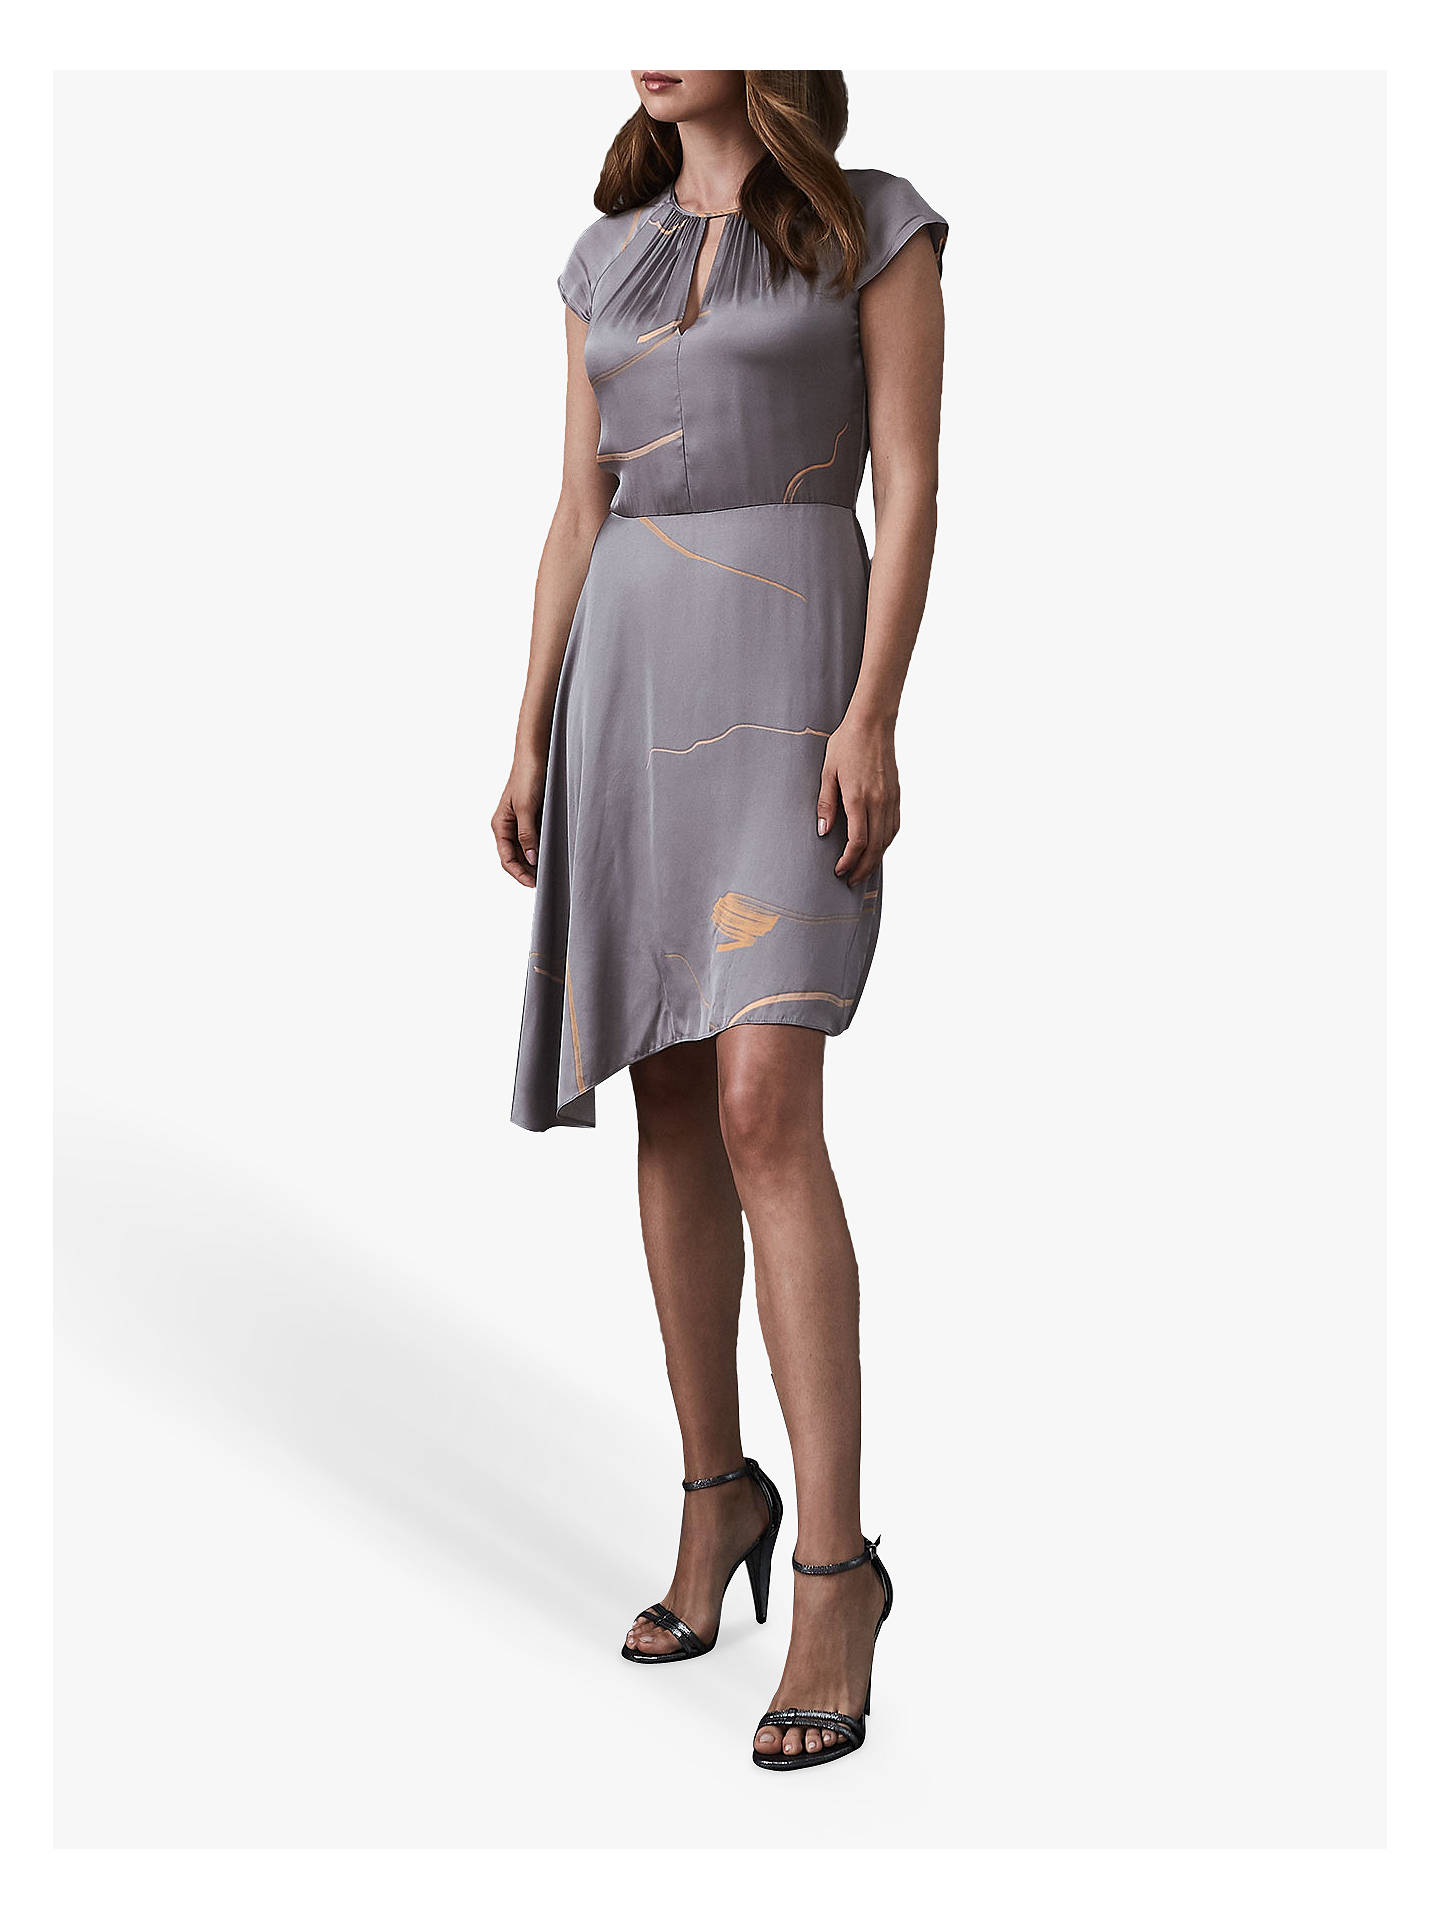 BuyReiss Zoe Printed Dress, Grey, 14 Online at johnlewis.com